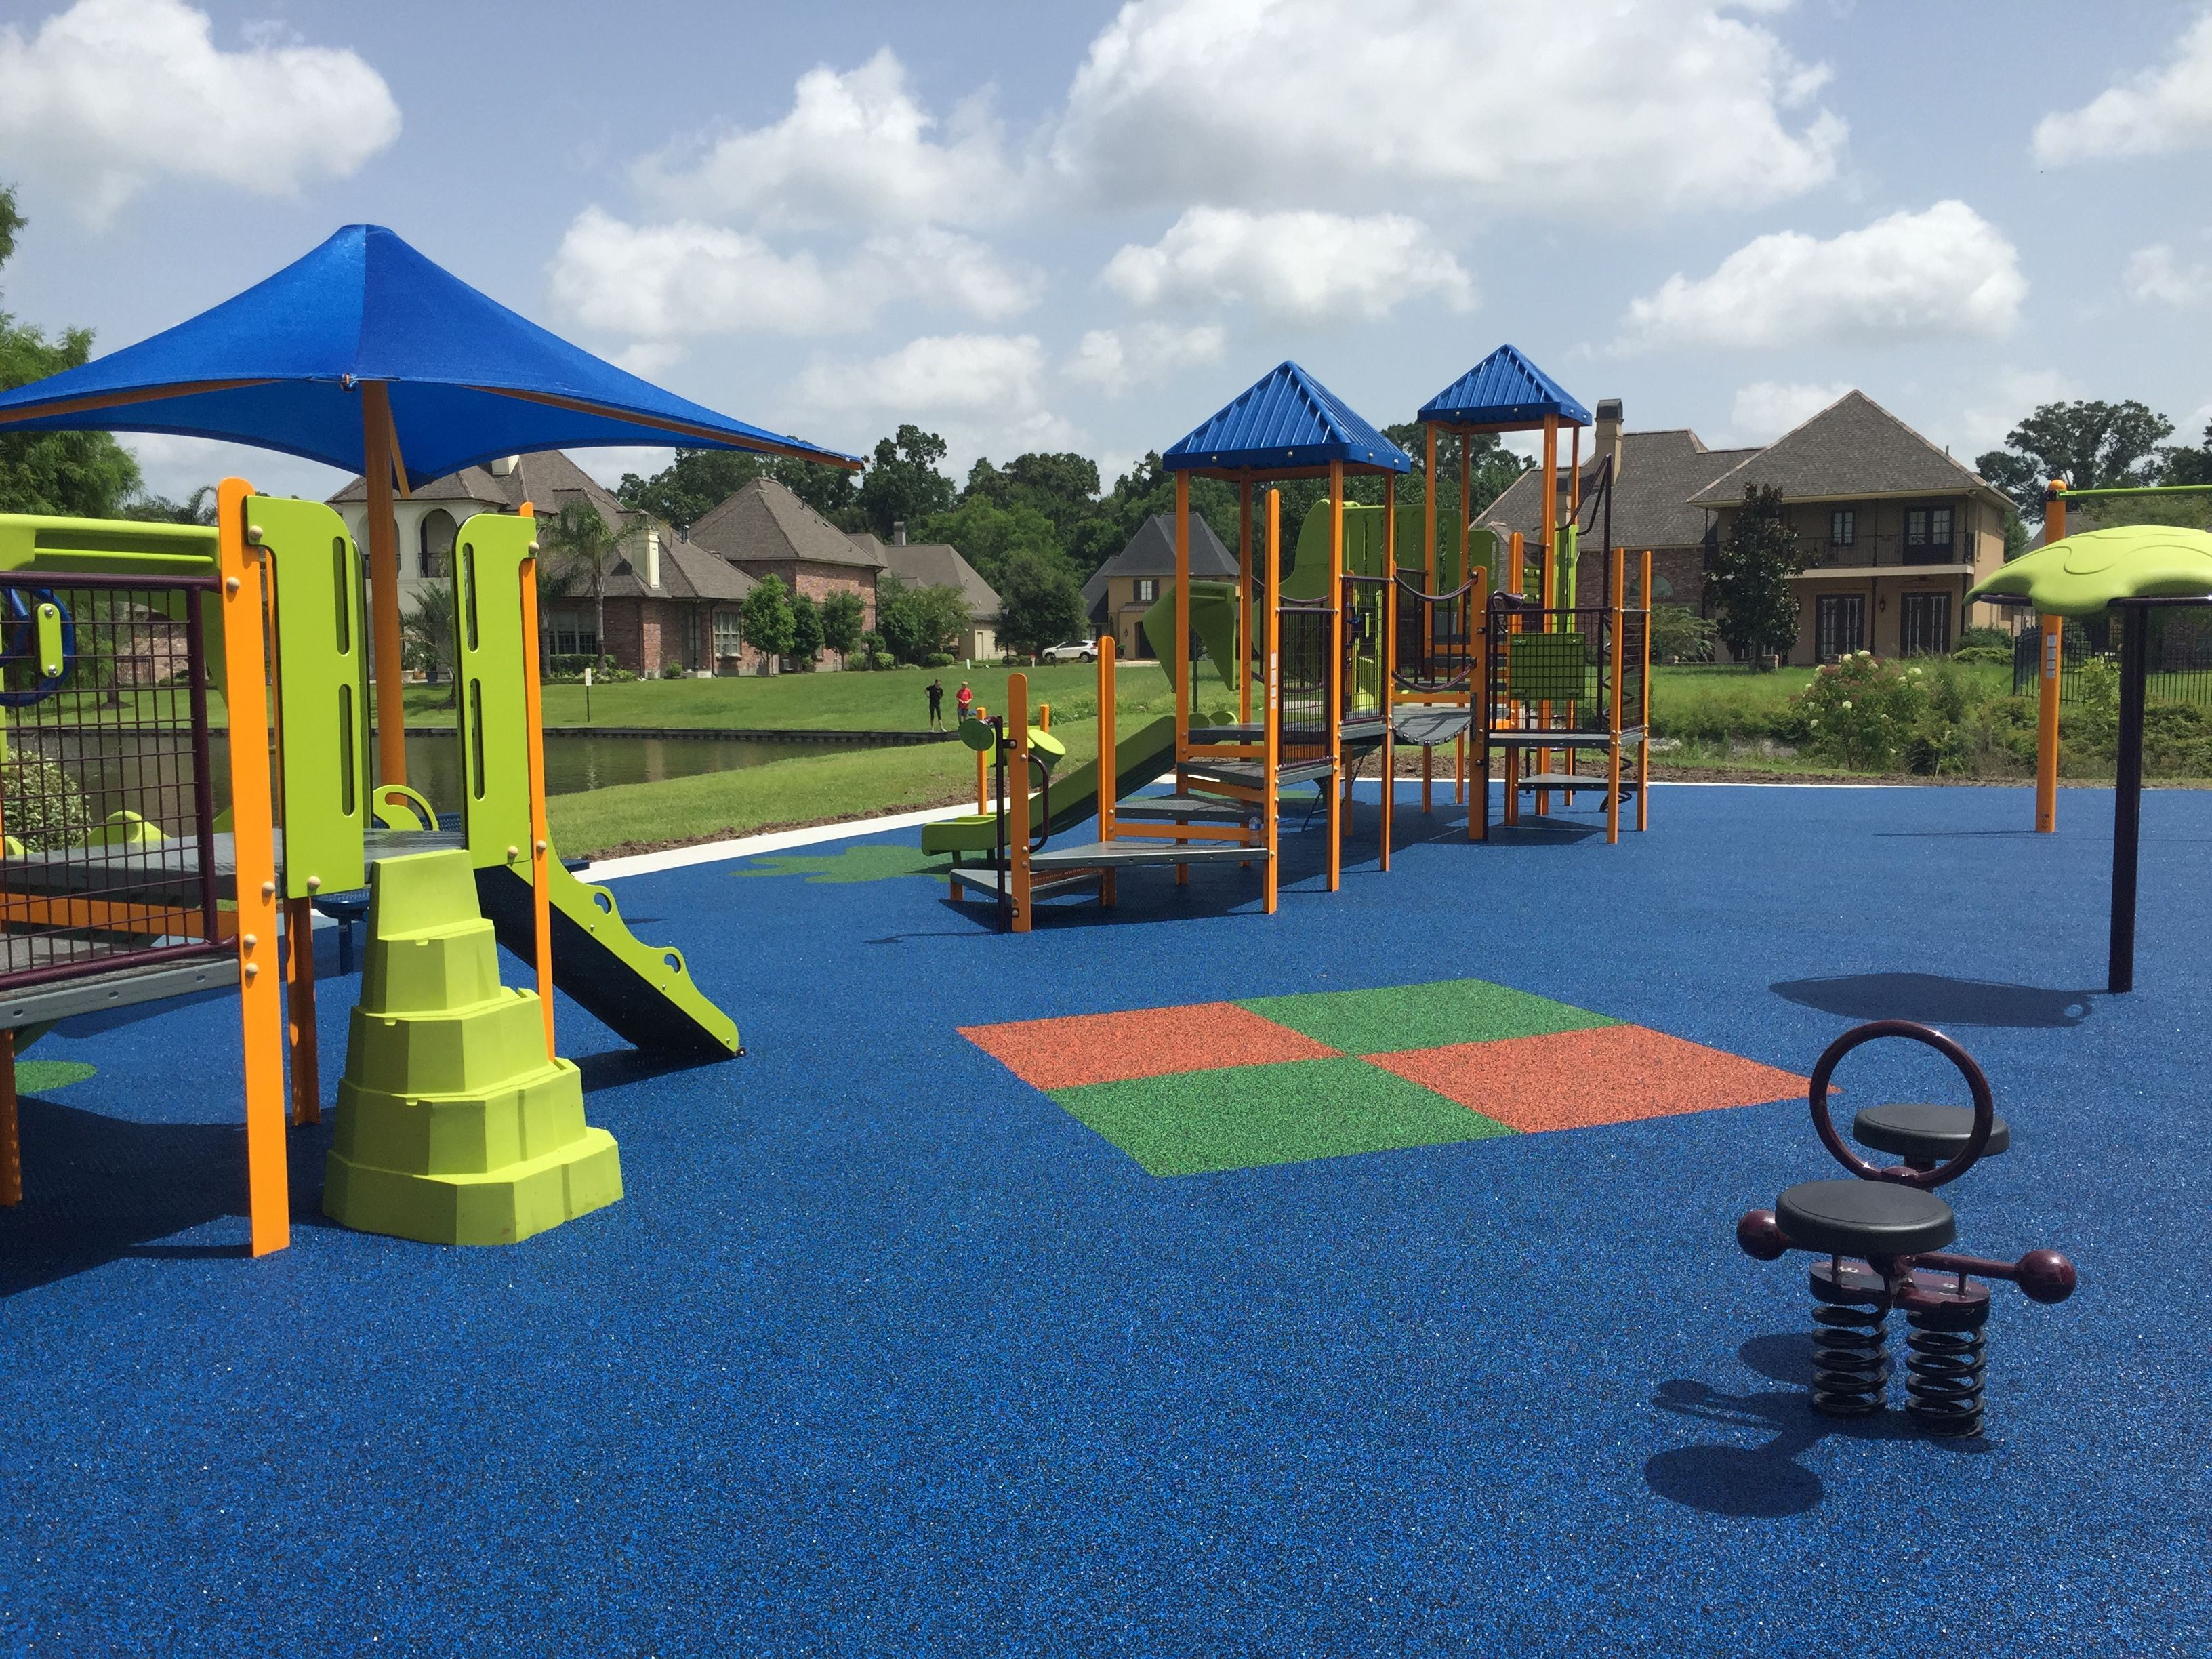 Lakes At Highland Subdivision In Baton Rouge Louisiana Has A Beautiful New Playground Over 3 300 Square Birthday Party Places Playground Green And Orange